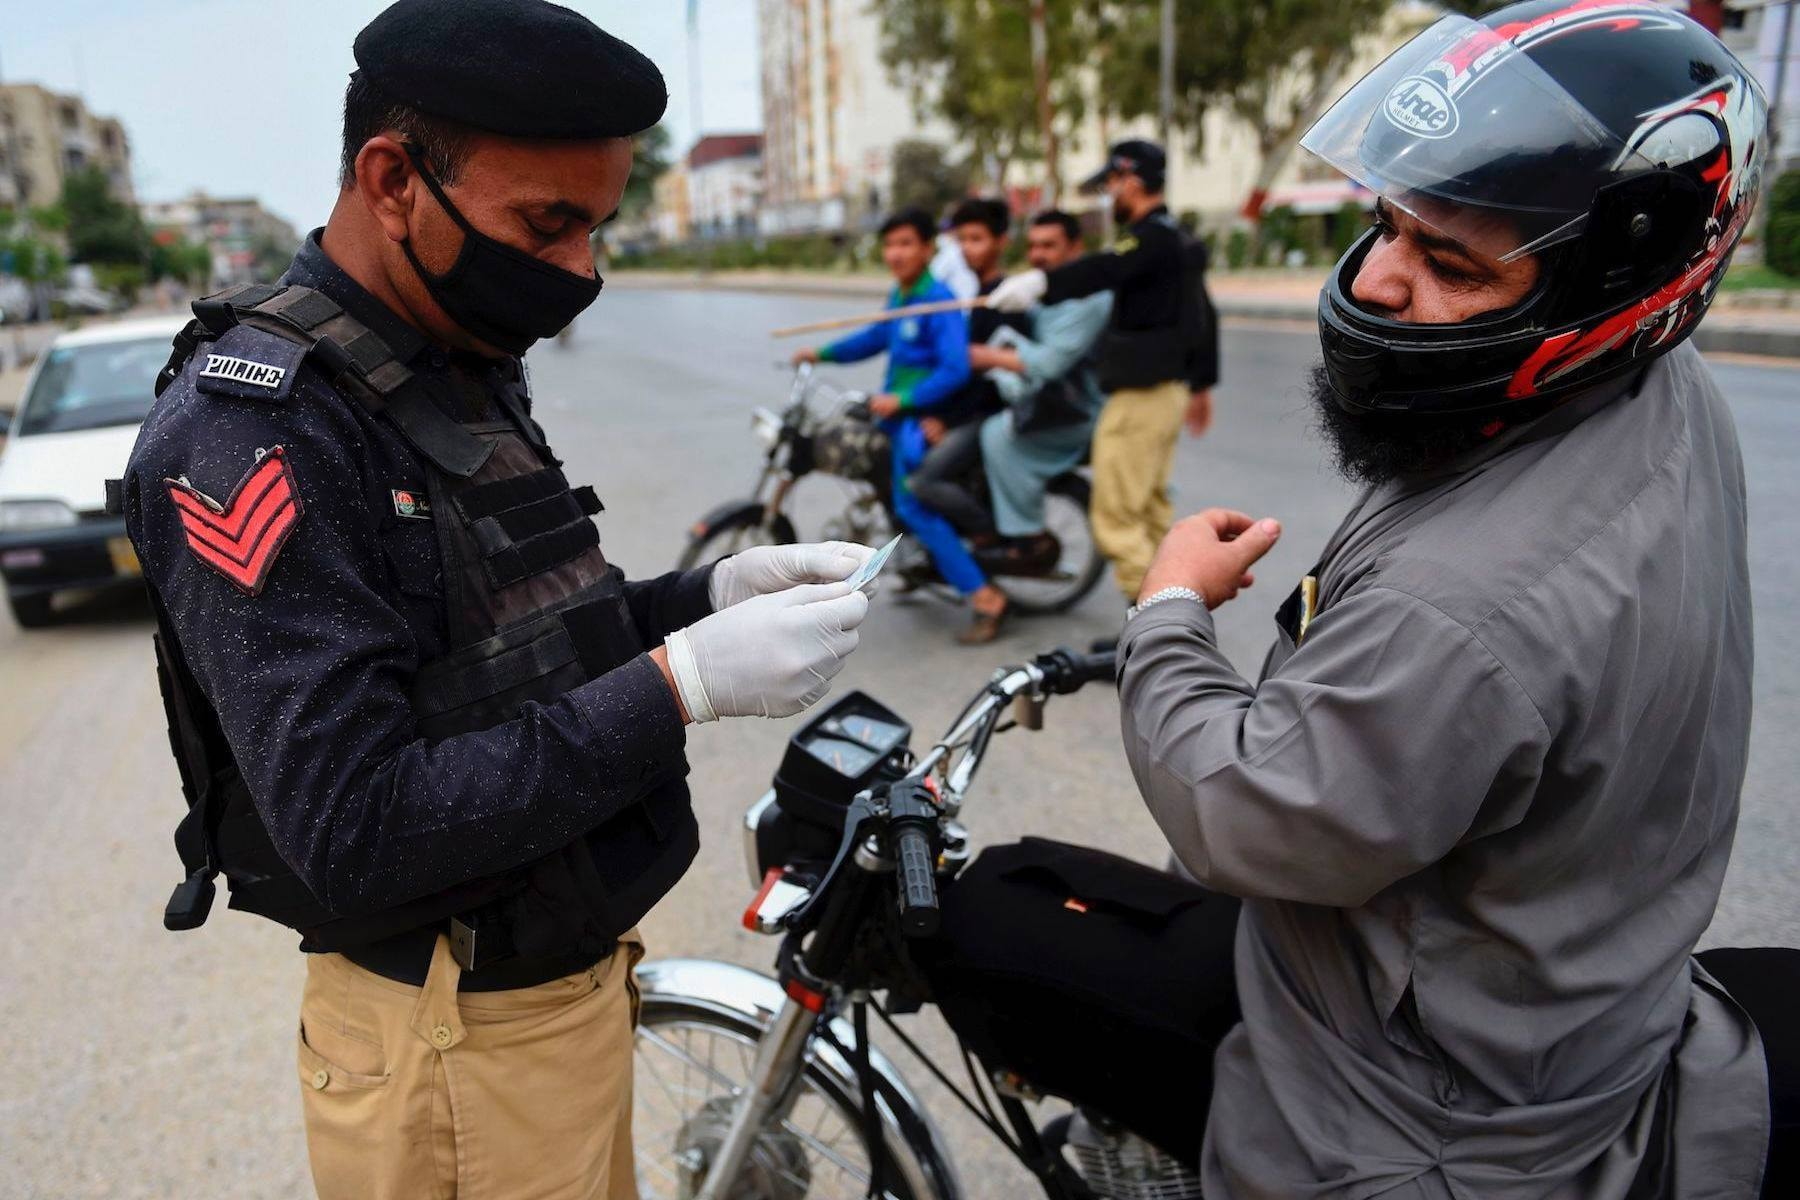 A policeman checks the identity card of a motorcyclist during a lockdown in Karachi. — AFP